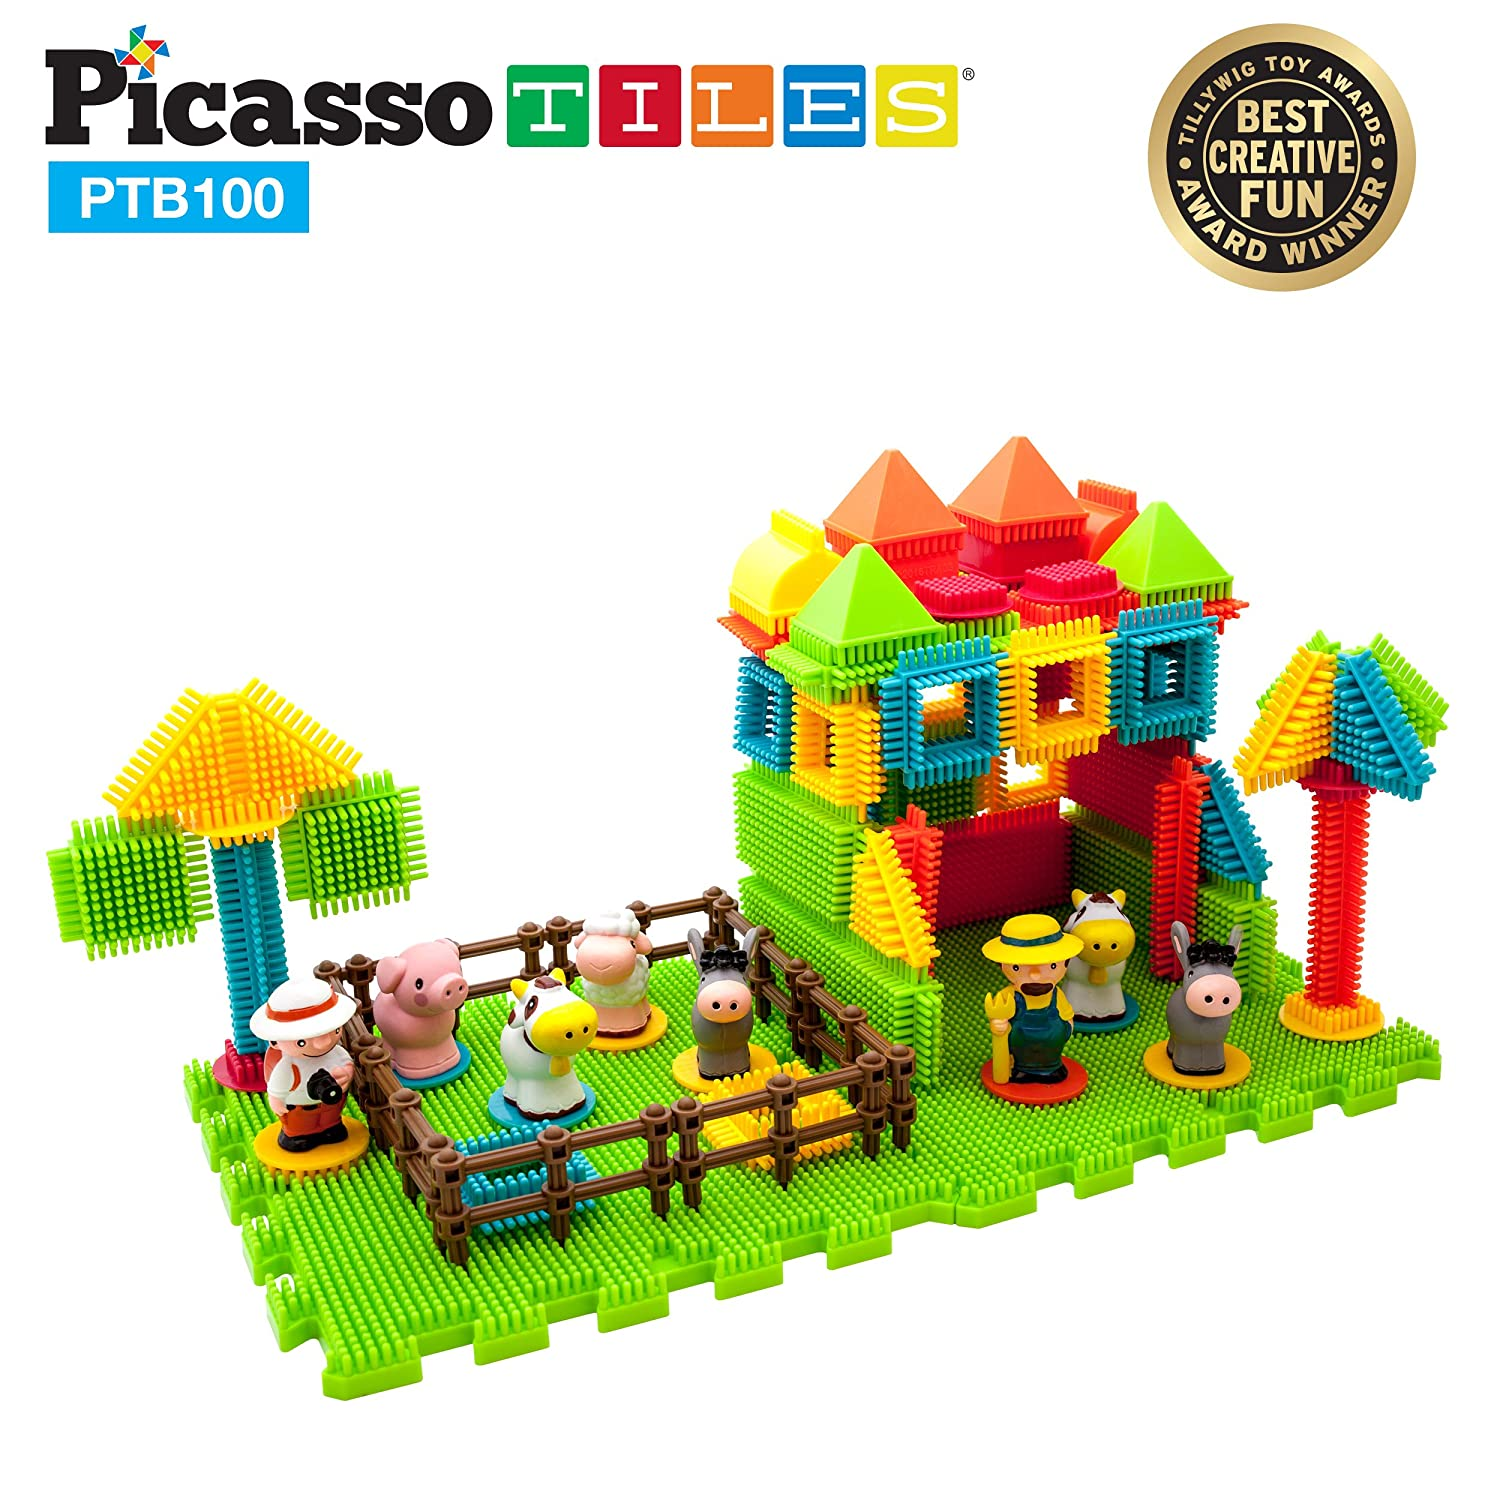 PicassoTiles PTB100 100pcs Bristle Shape 3D STEM Building Blocks Tiles Farm Theme Set Construction Learning Toy Stacking Educational Block, Creativity beyond Imagination, Recreational, Educational Review